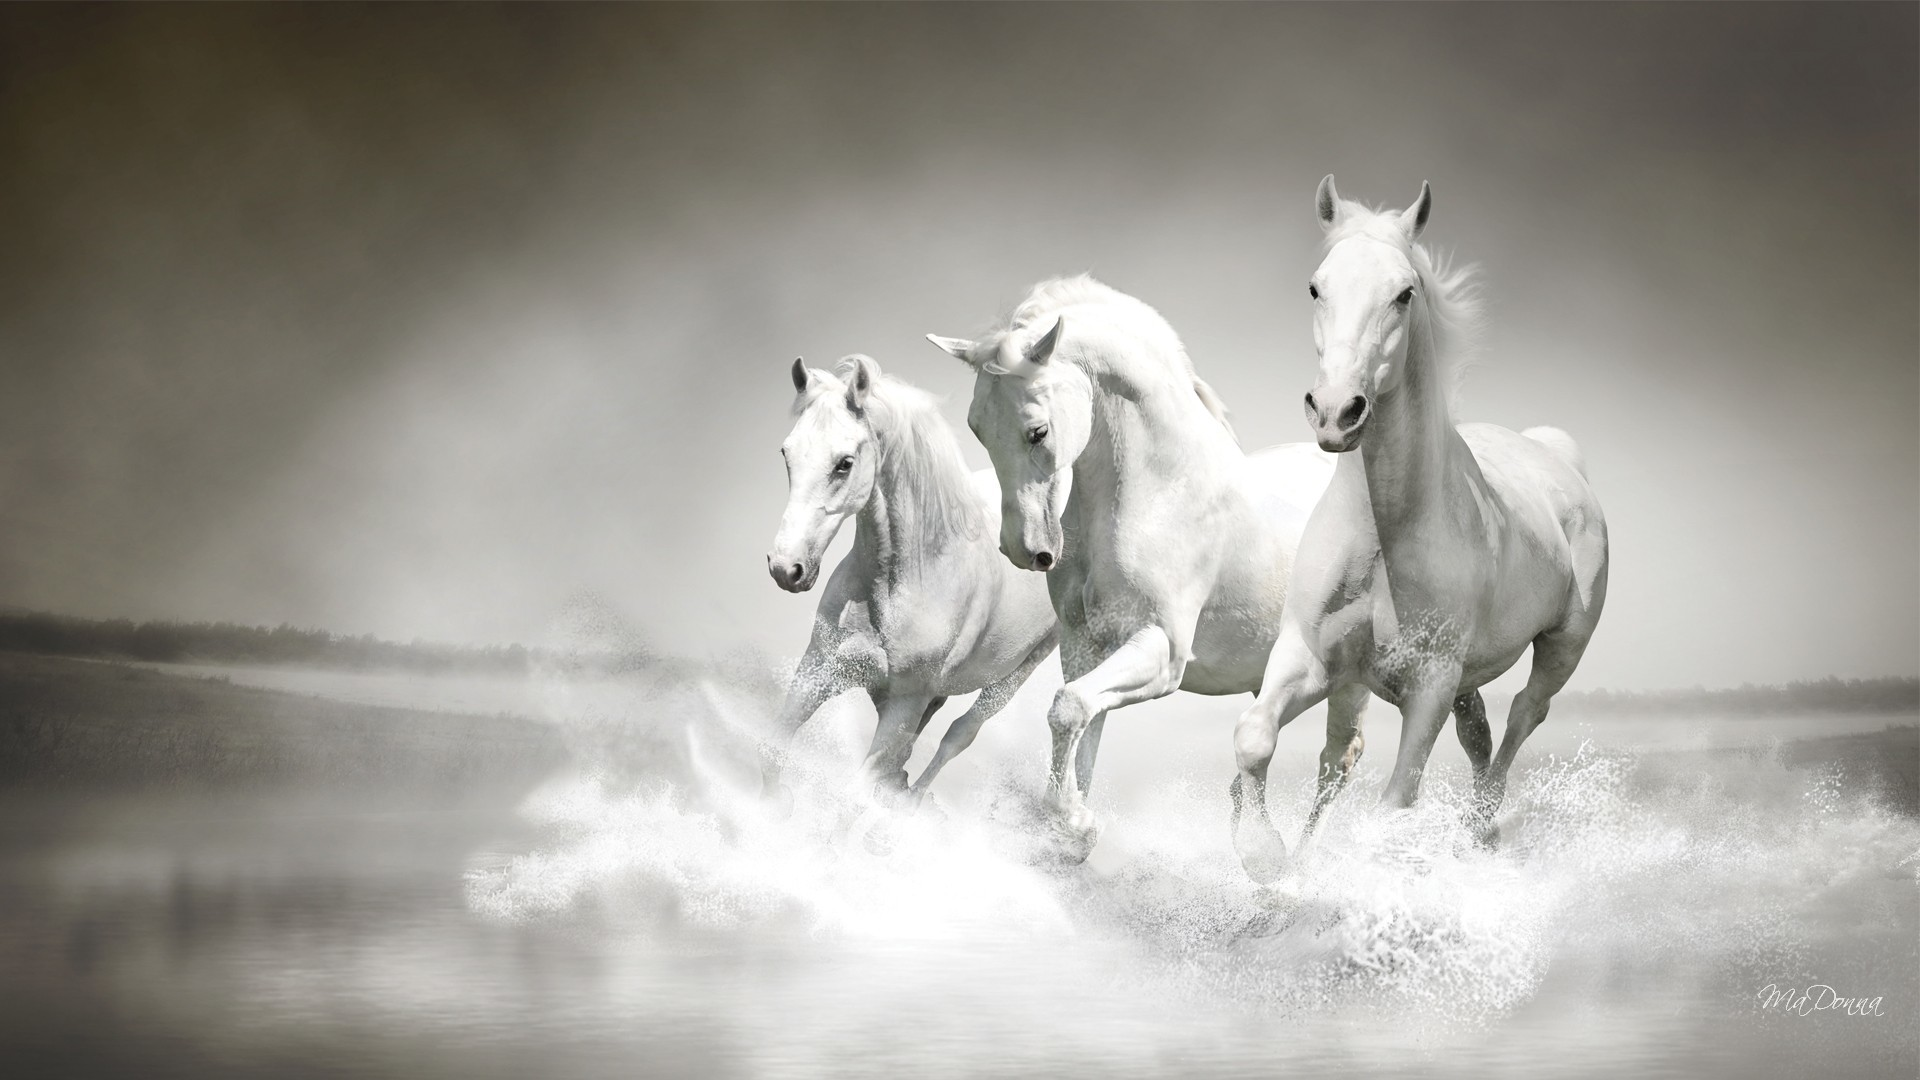 Res: 1920x1080, White Horse | Full HD Images